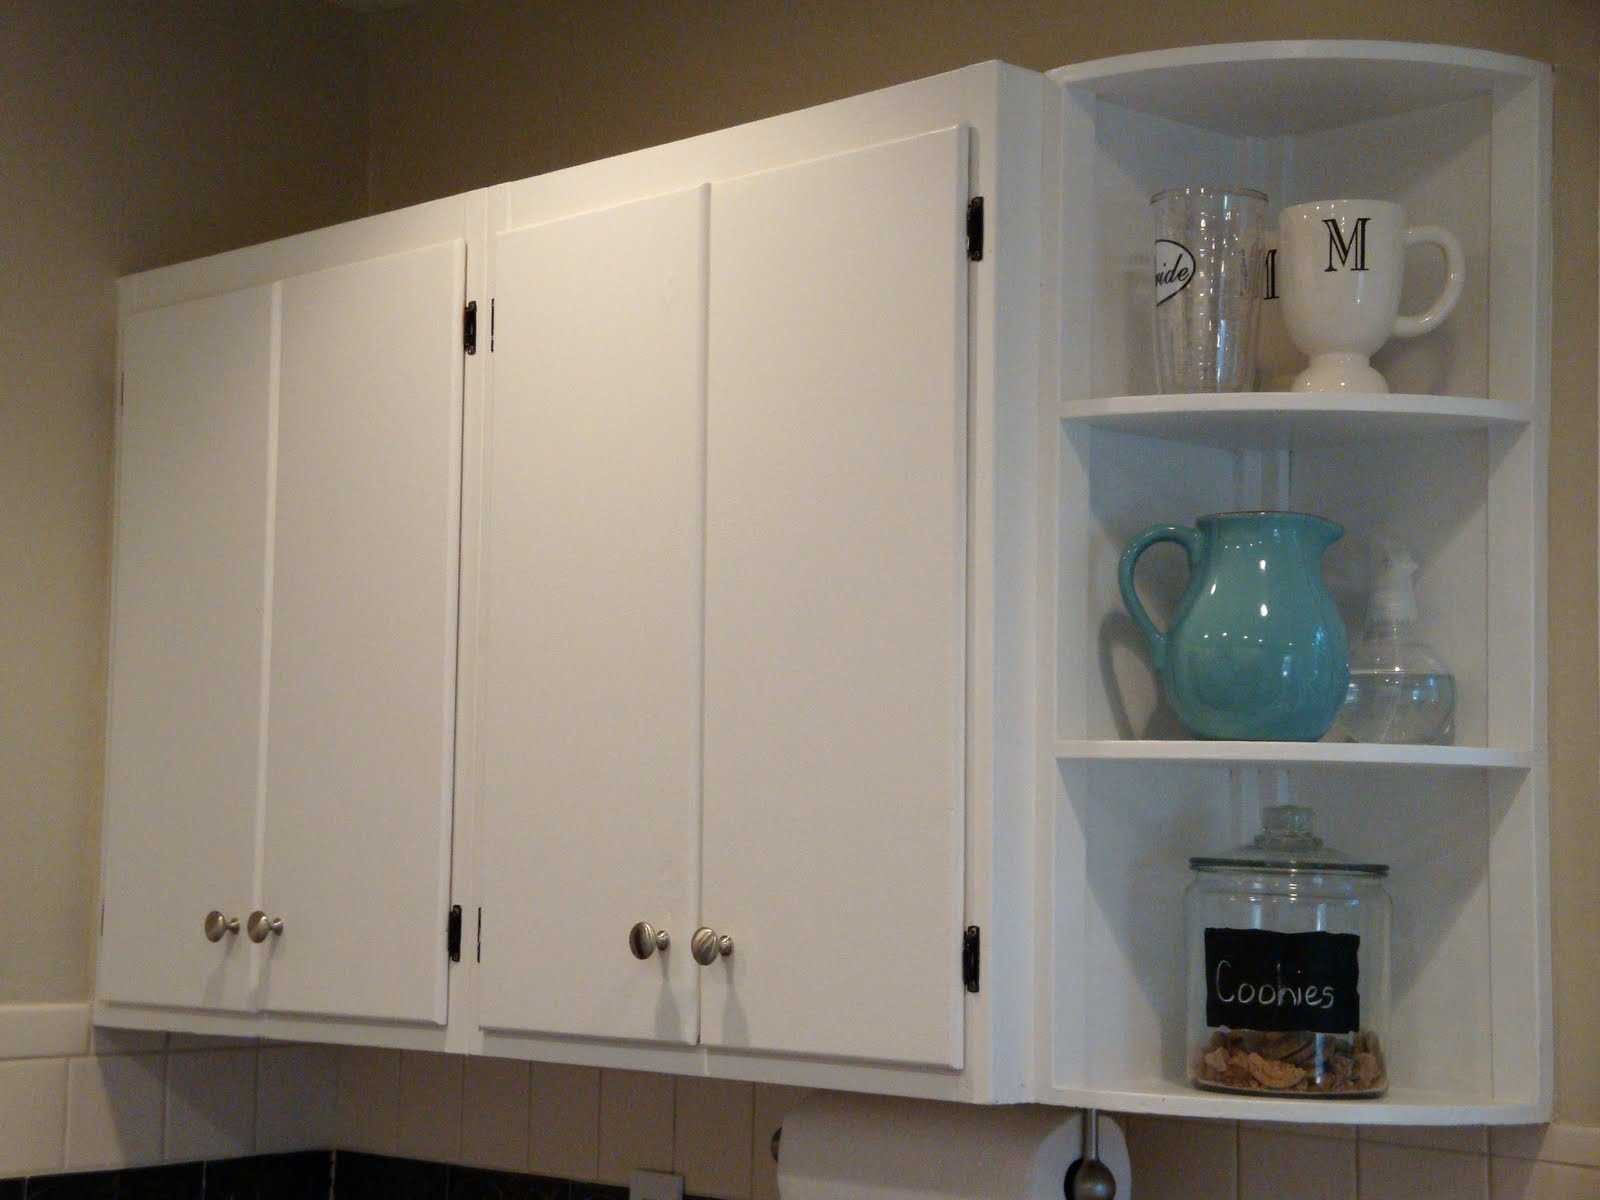 Discount Kitchen Cabinets To Improve Your Kitchen's Look Cabinets